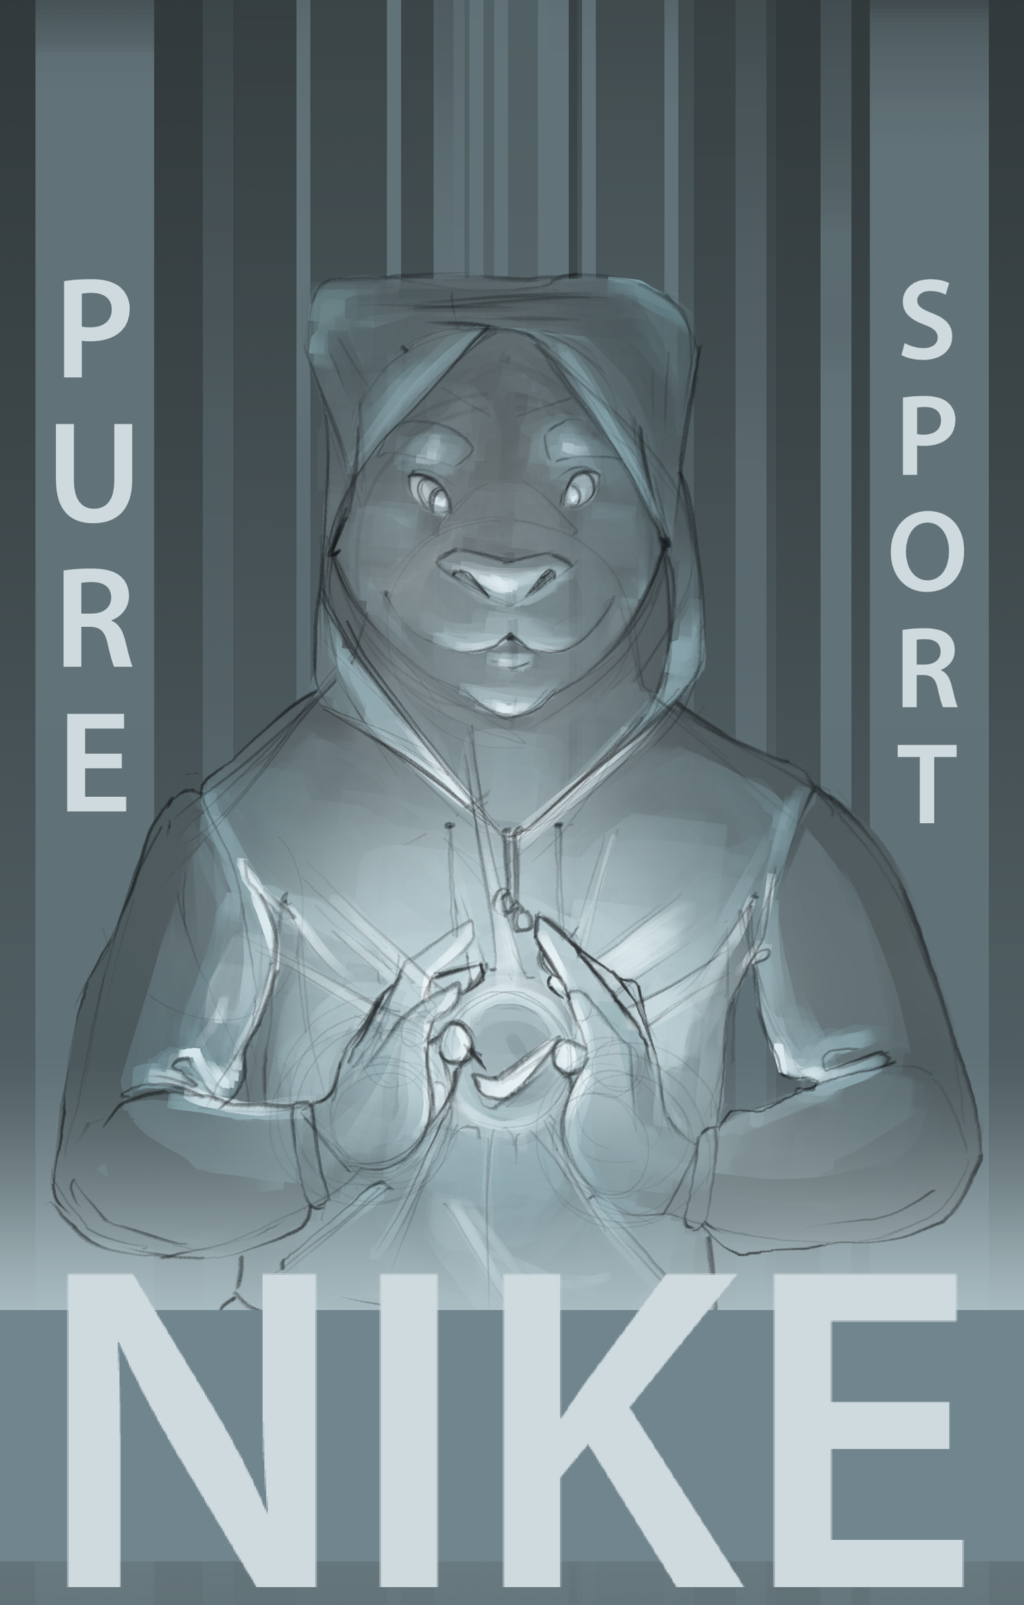 Featured image: Pure sport nike sketch